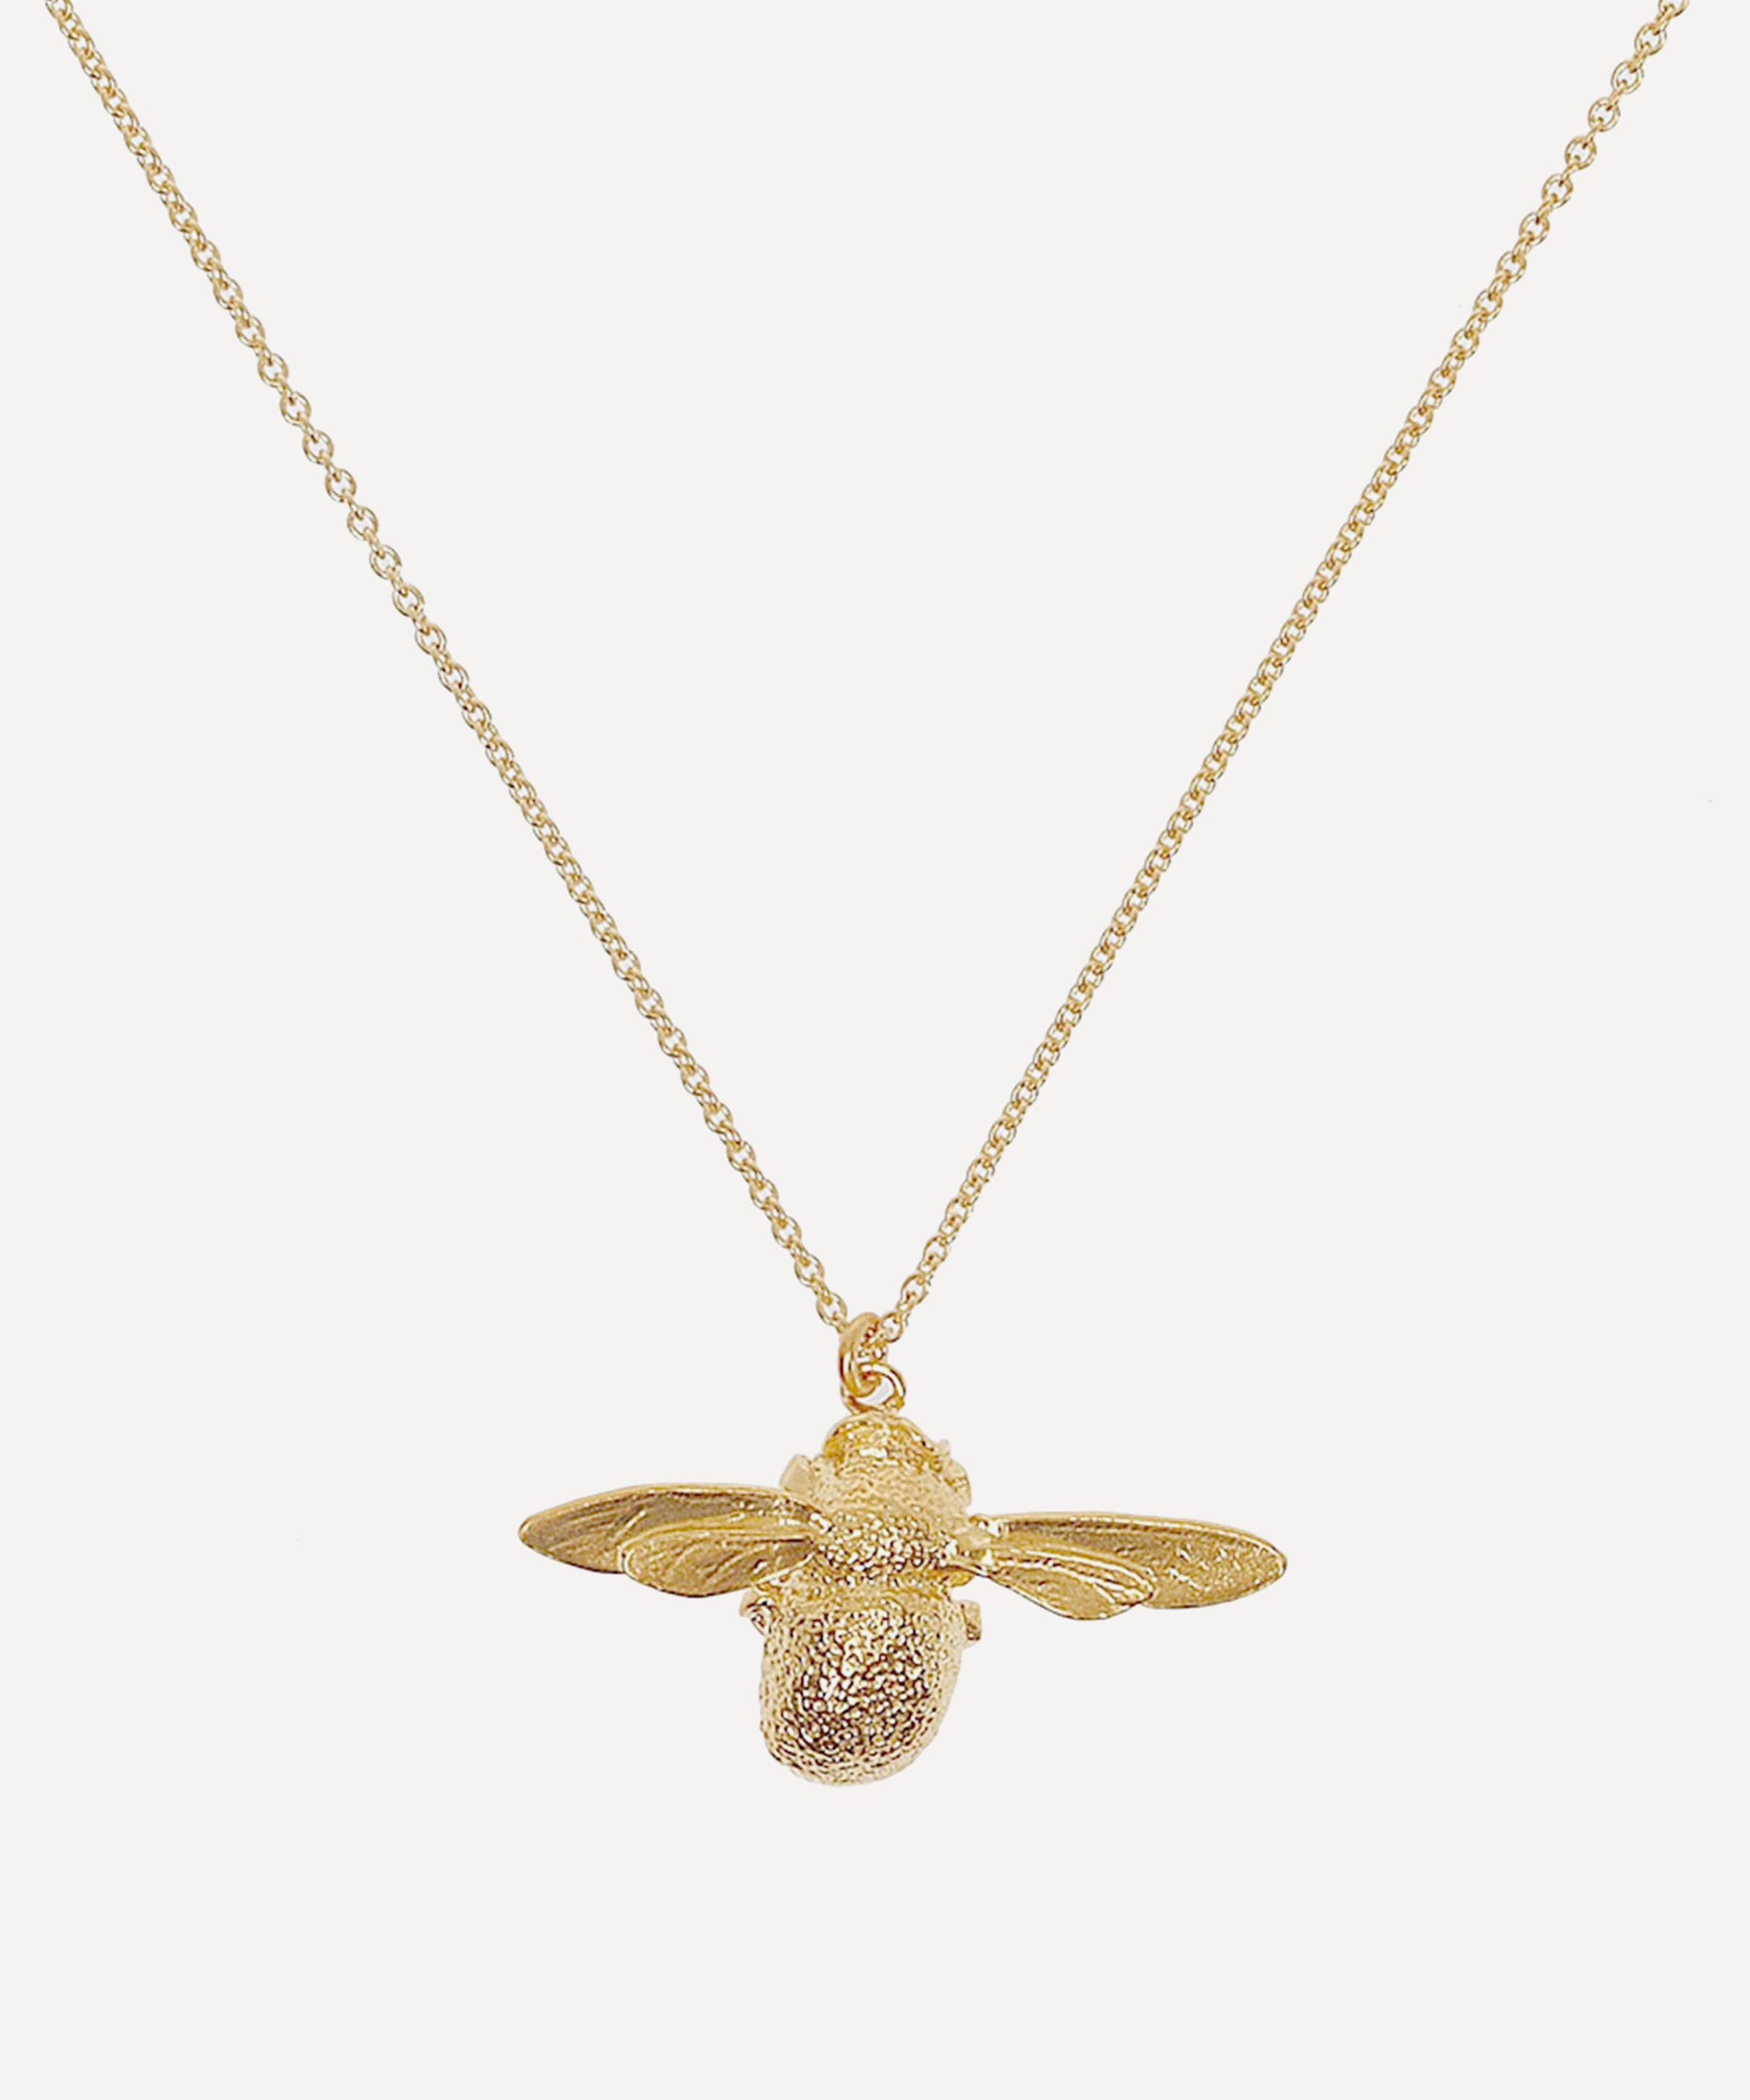 bf26a09467cc3 Gold-Plated Bumblebee Necklace